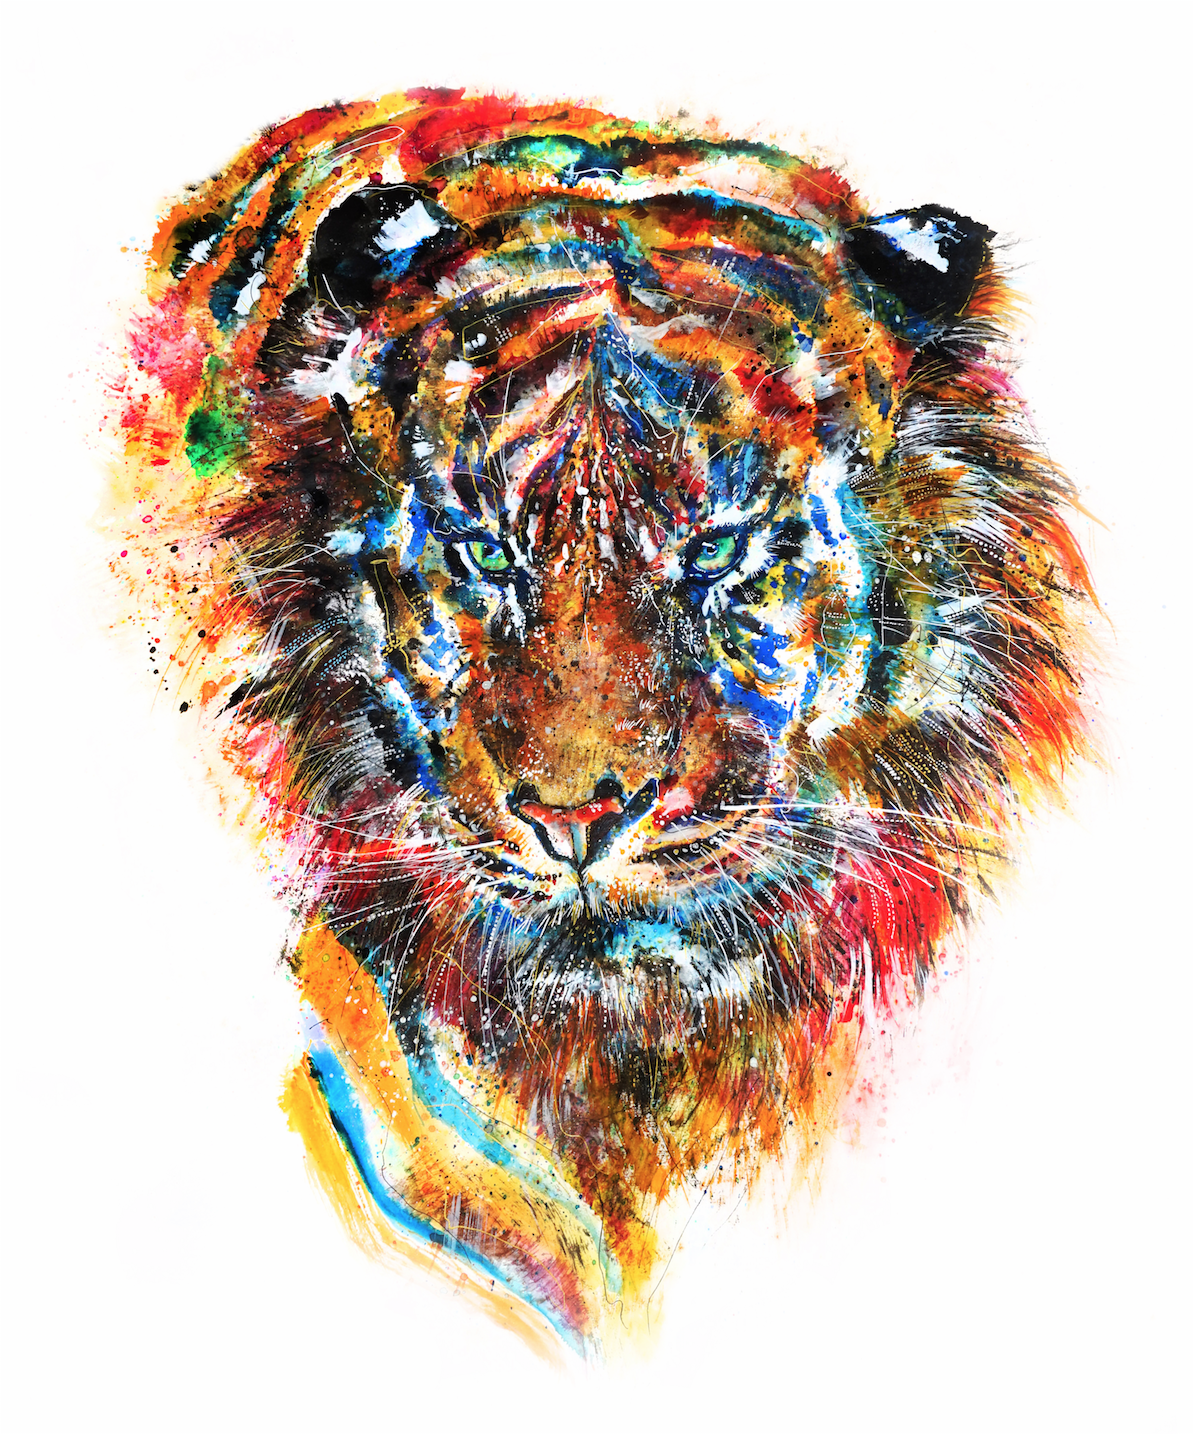 Emily Tan - The power of the work is founded upon her motivation as a social entrepreneur, her altruistic determination to stimulate social change and inspire positive impact. This exciting young artist is currently working with the World Wildlife Fund UK, on a series of nine, stunning, large scale animal portraitures. Each animal being personally named by celebrity ambassadors and employees of WWF UK, they will be applied across a wide range of merchandise and the original artworks will be sold in Auction during 2016. All funds raised go towards WWF.